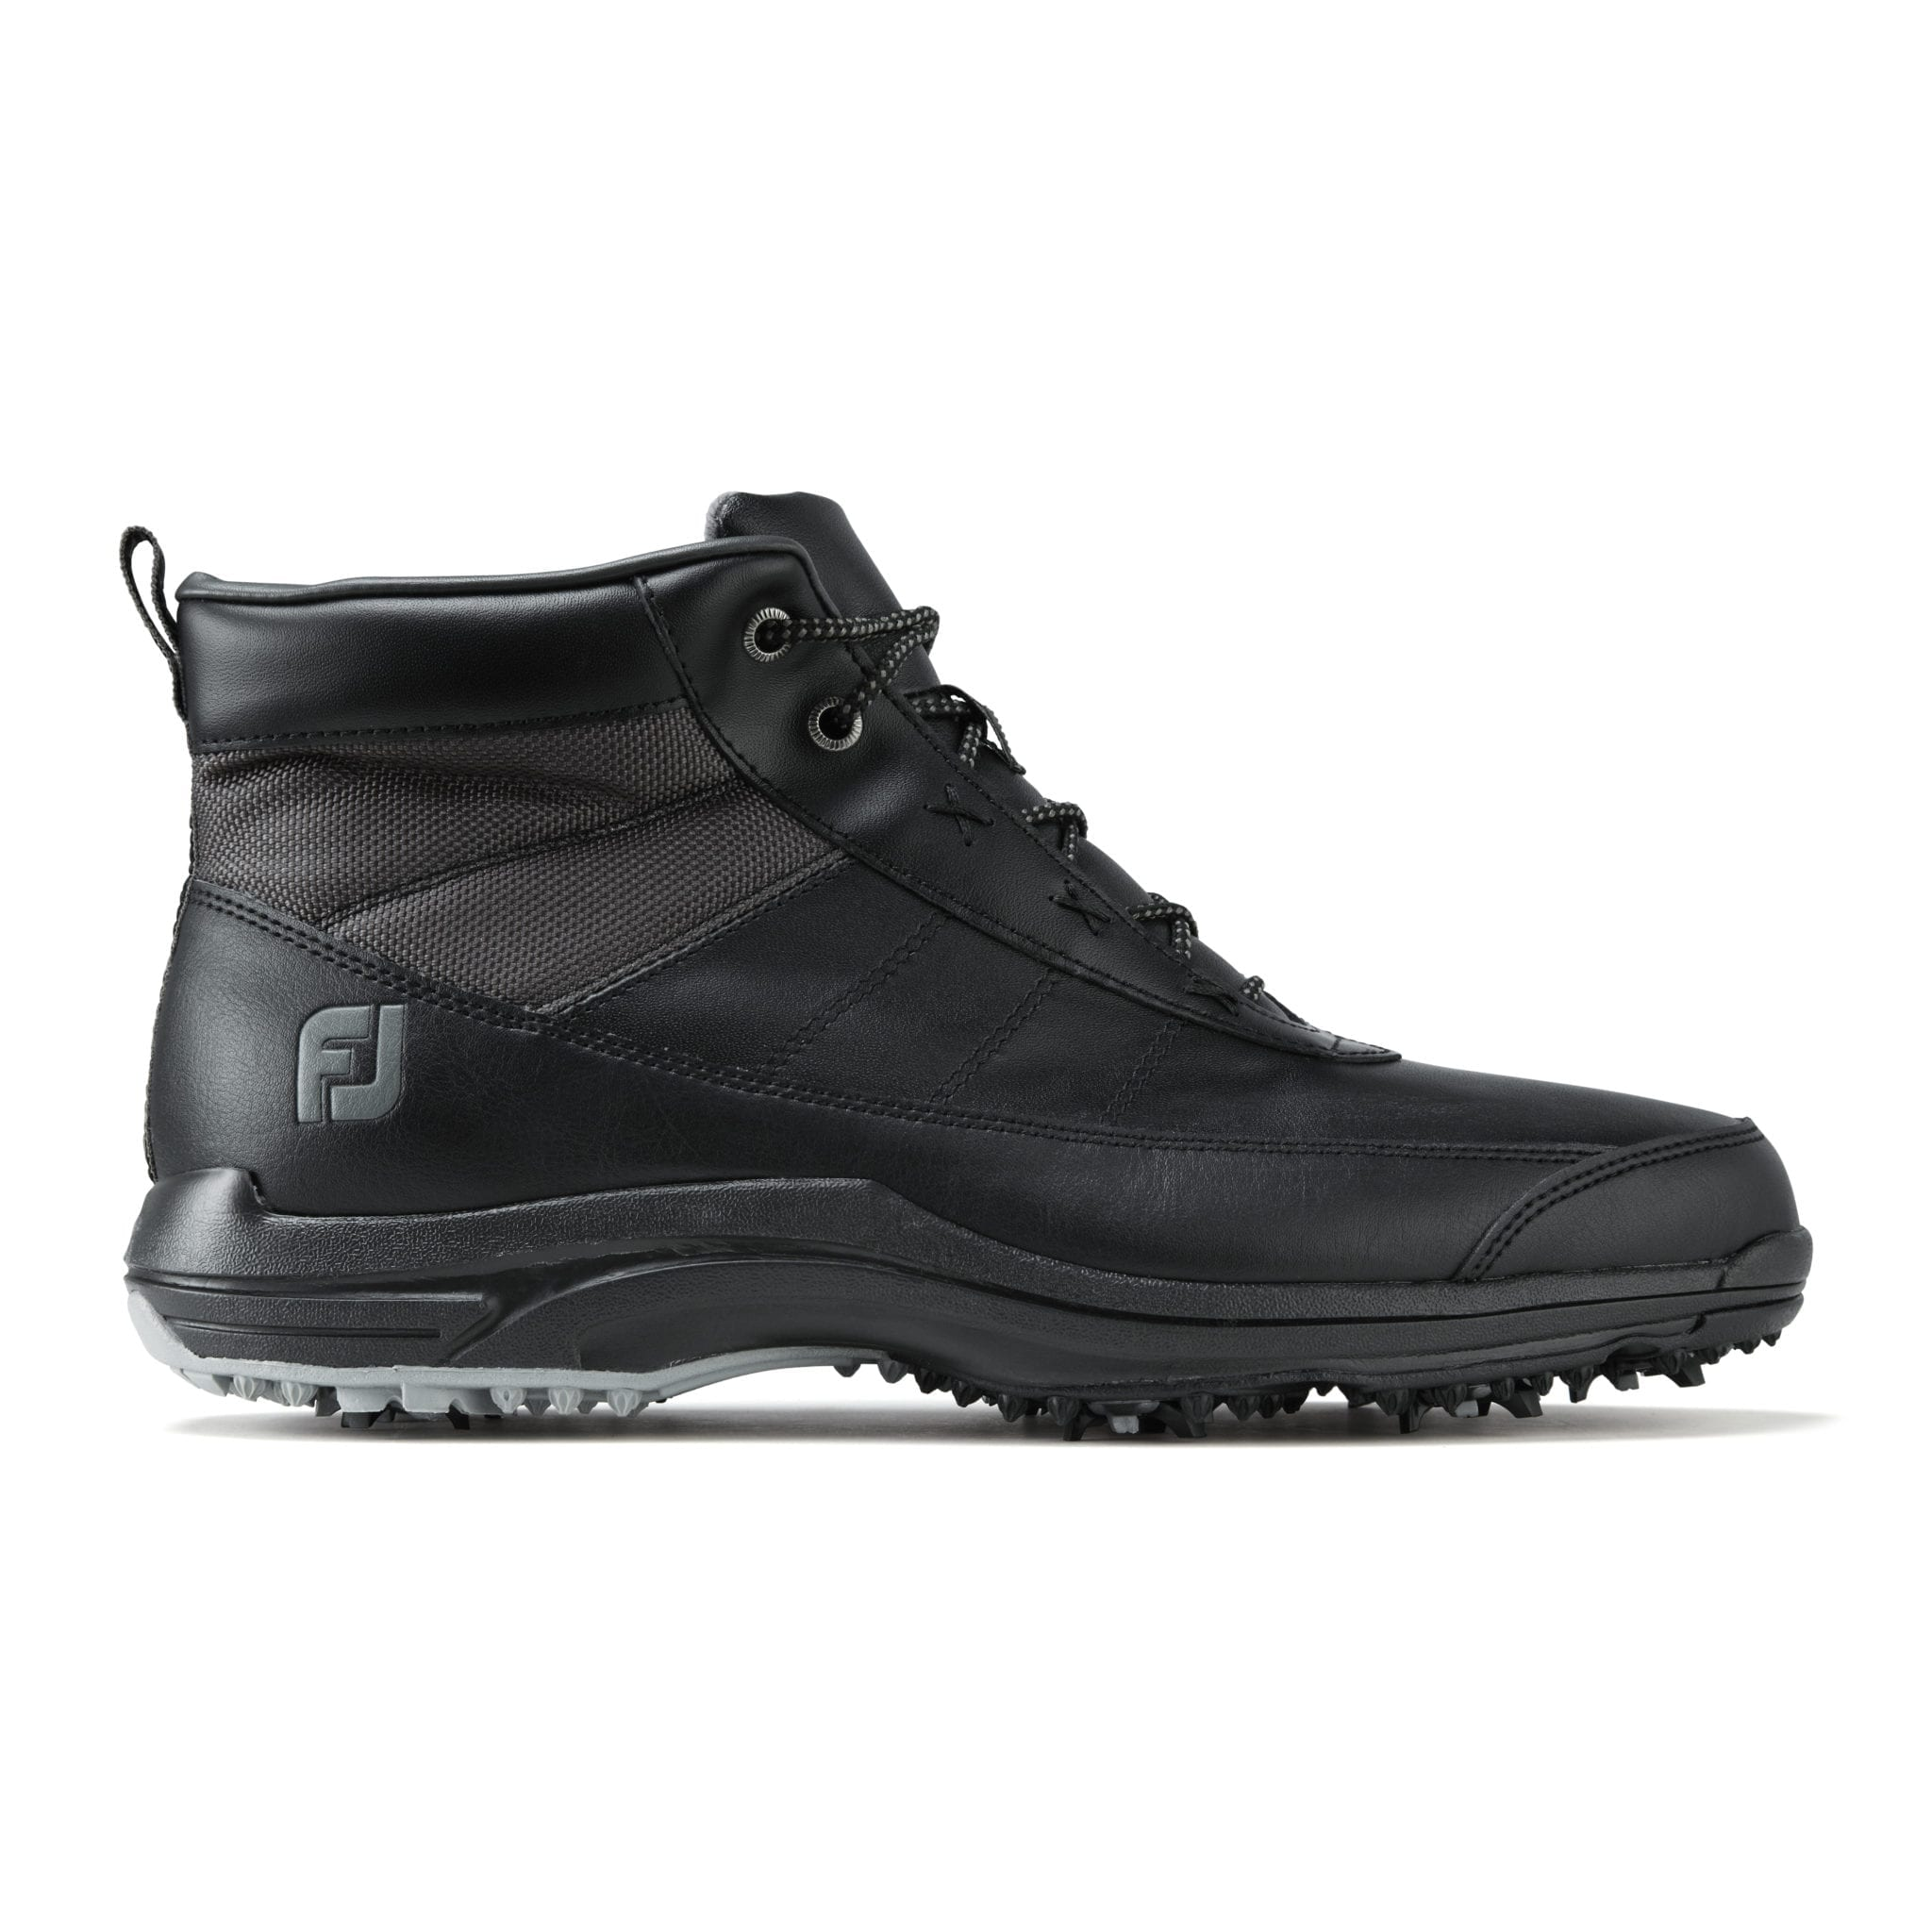 FJ BOOT BLACK